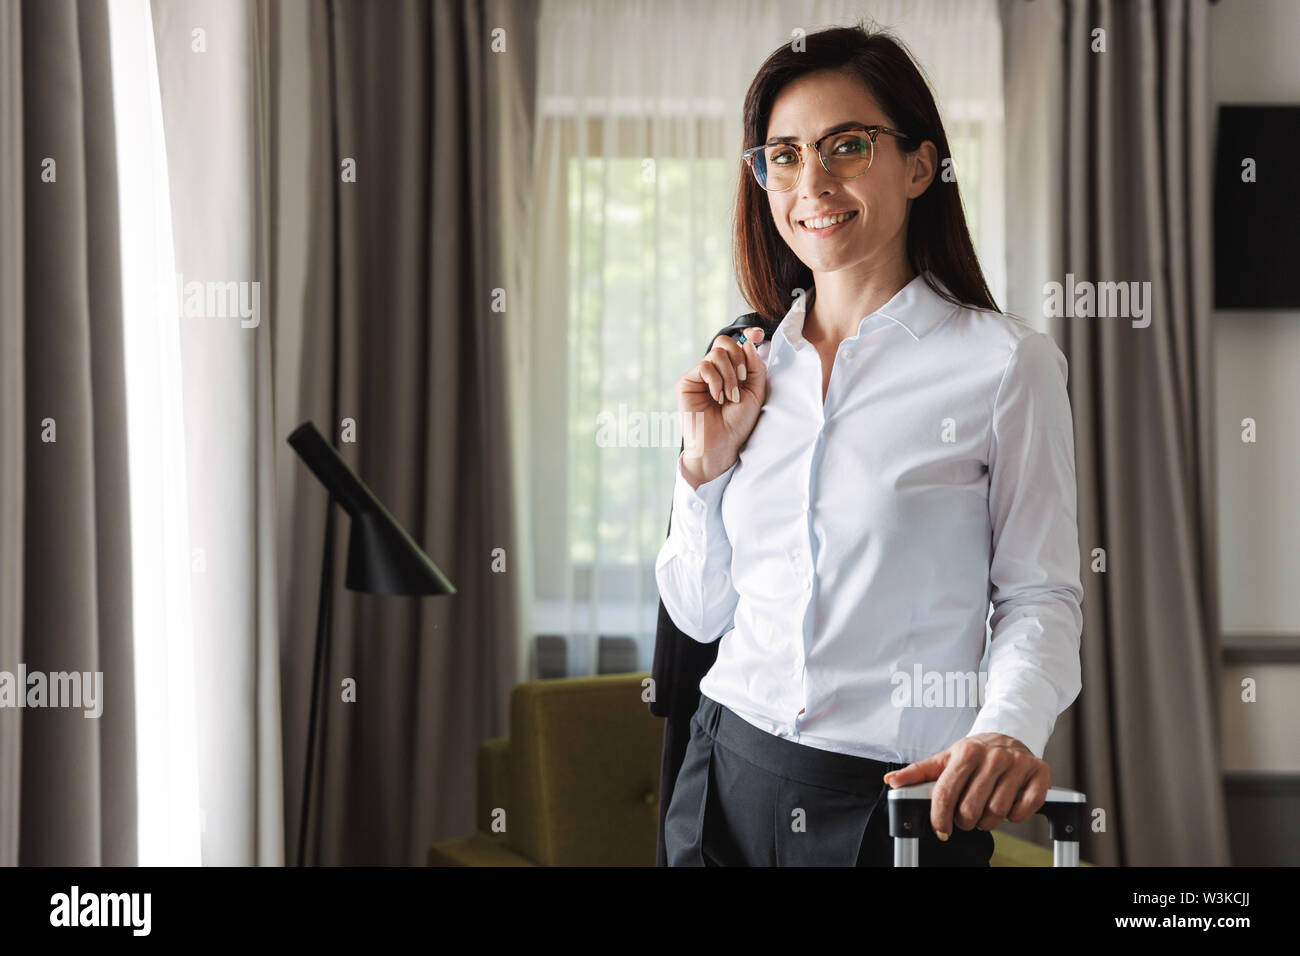 Image of a happy beautiful young business woman in formal wear clothes indoors at home with suitcase. - Stock Image